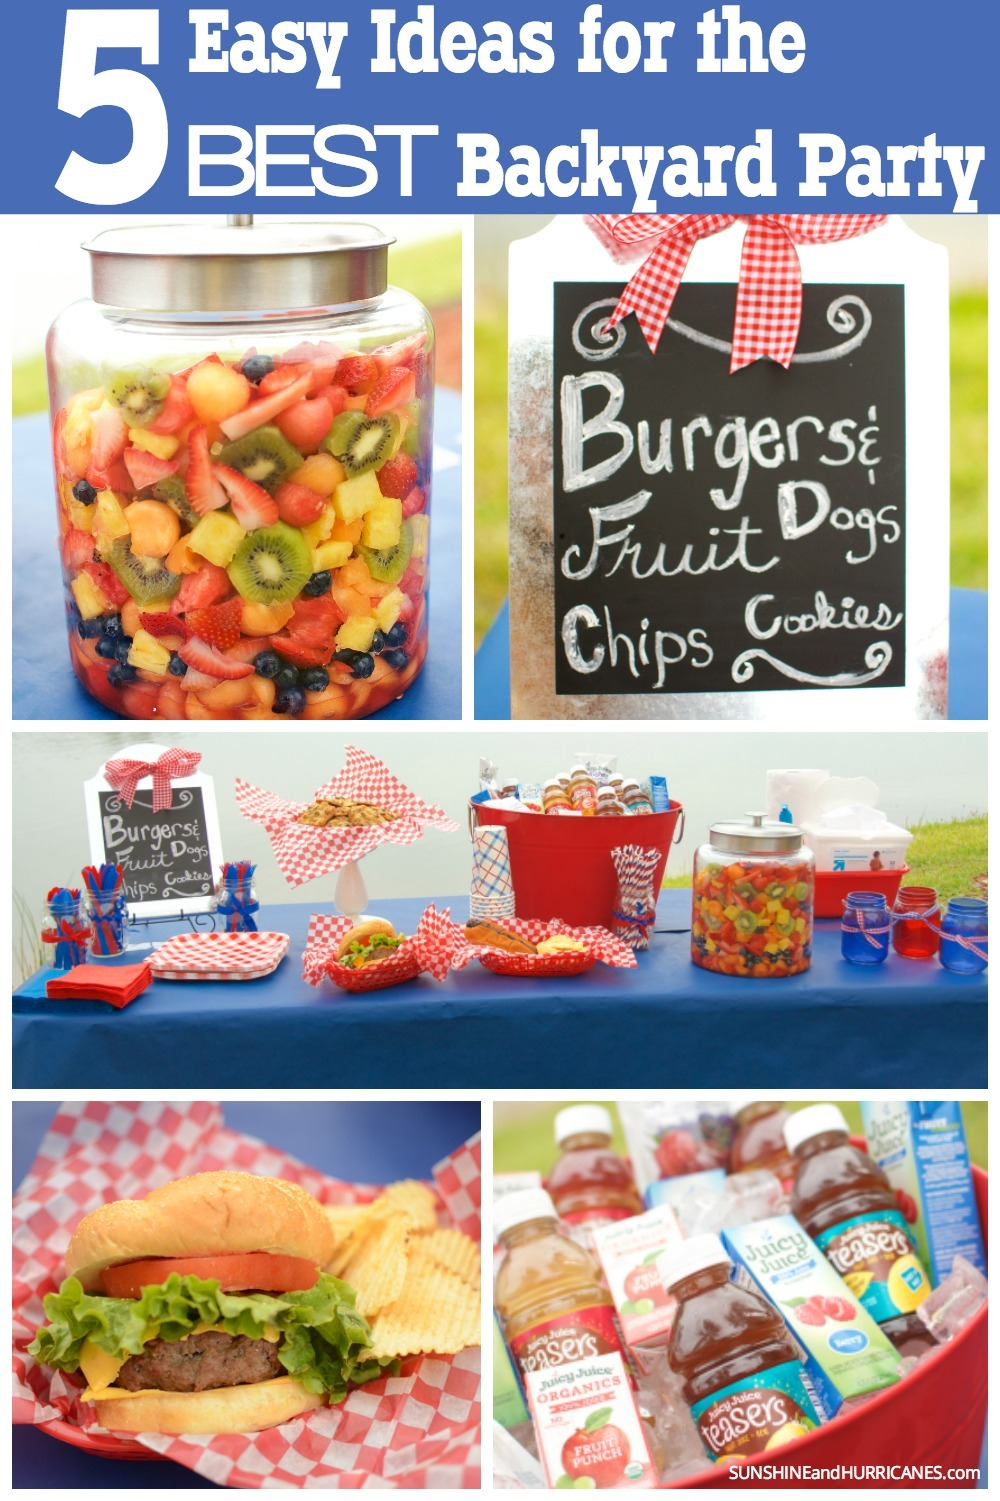 Warm afternoons spent swimming in the pool, playing cornhole and cooking up burgers and dogs, that is what summer is all about! Entertaining can be easy and even the hostess can enjoy herself with these 5 easy ideas for the BEST Backyard Party. SunshineandHurricanes.com